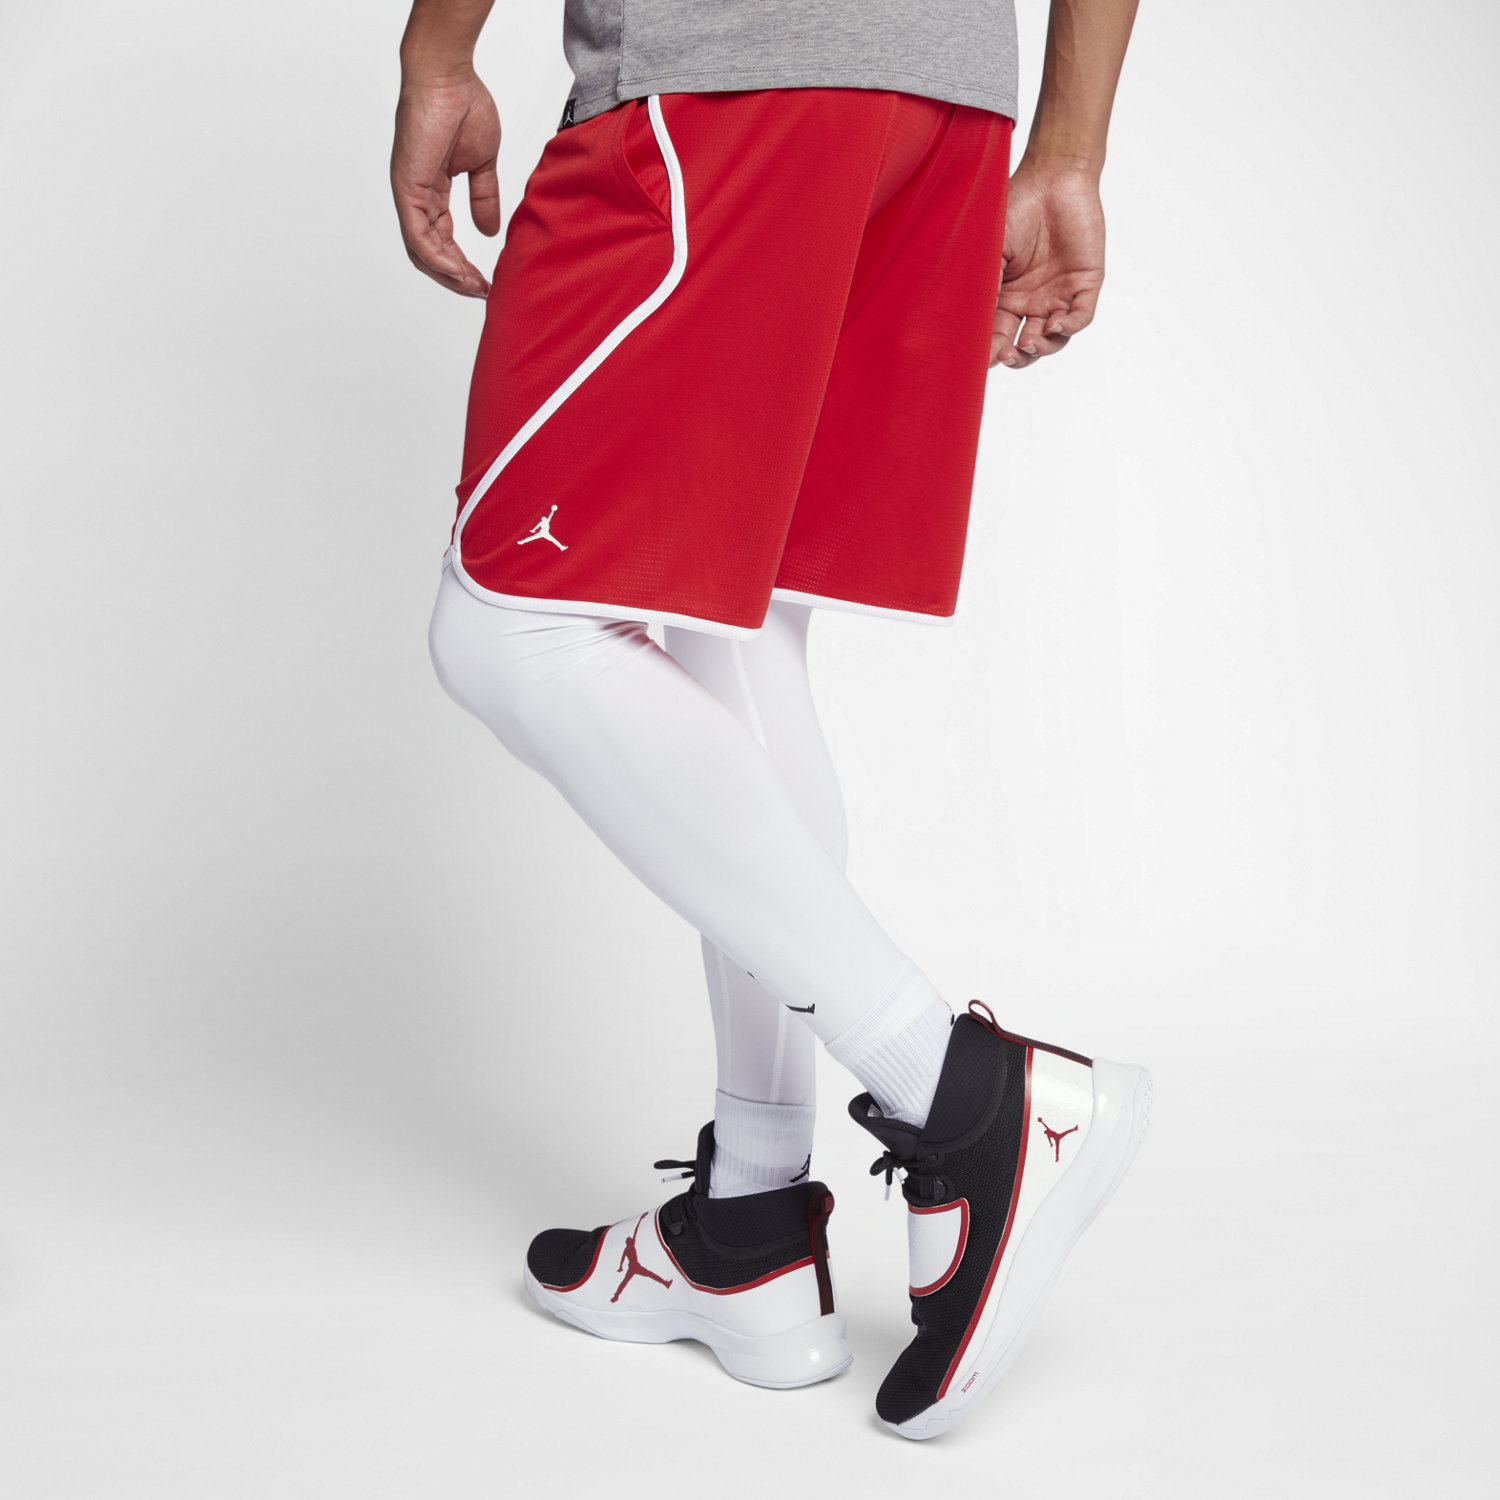 Mens basketball shorts on sale free shipping - Mens Basketball Shorts On Sale Free Shipping 59